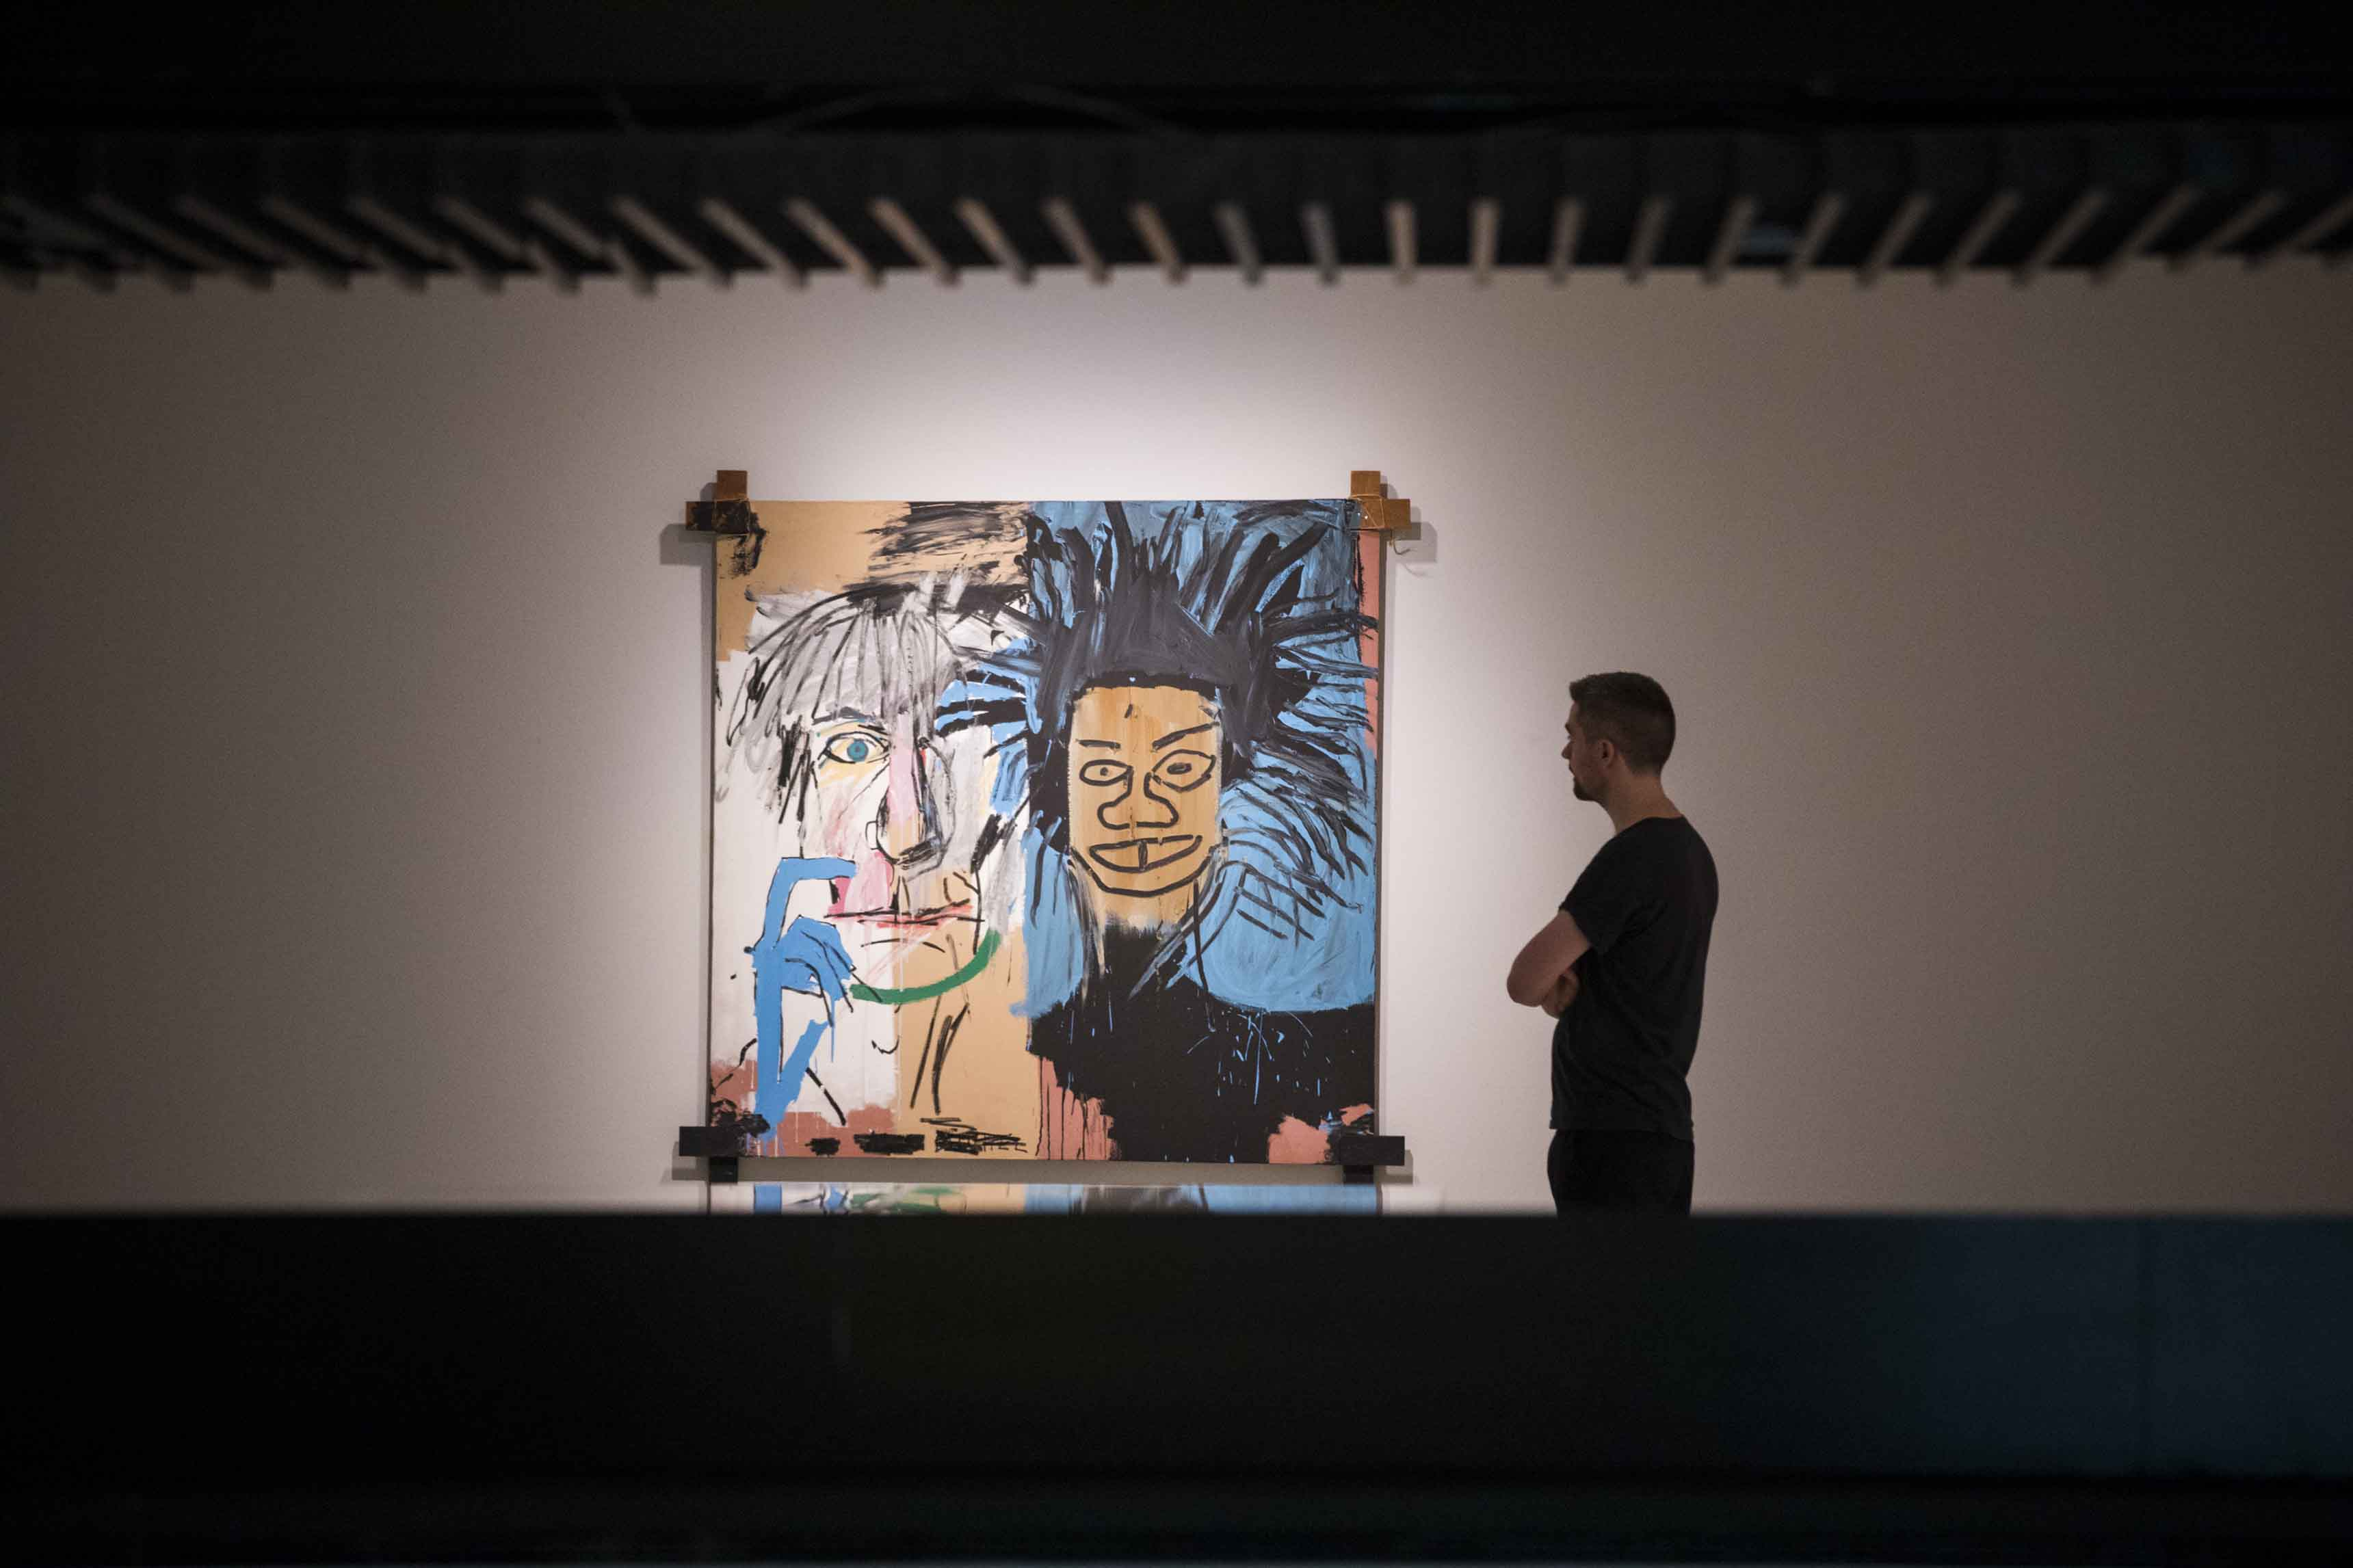 Basquiat: Boom For Real Installation view Barbican Art Gallery 21 September 2017 – 28 January 2018 © Tristan Fewings / Getty Images Artwork: Jean-Michel Basquiat, Dos Cabezas, 1982 Private collection © The Estate of Jean-Michel Basquiat. Licensed by Artestar, New York